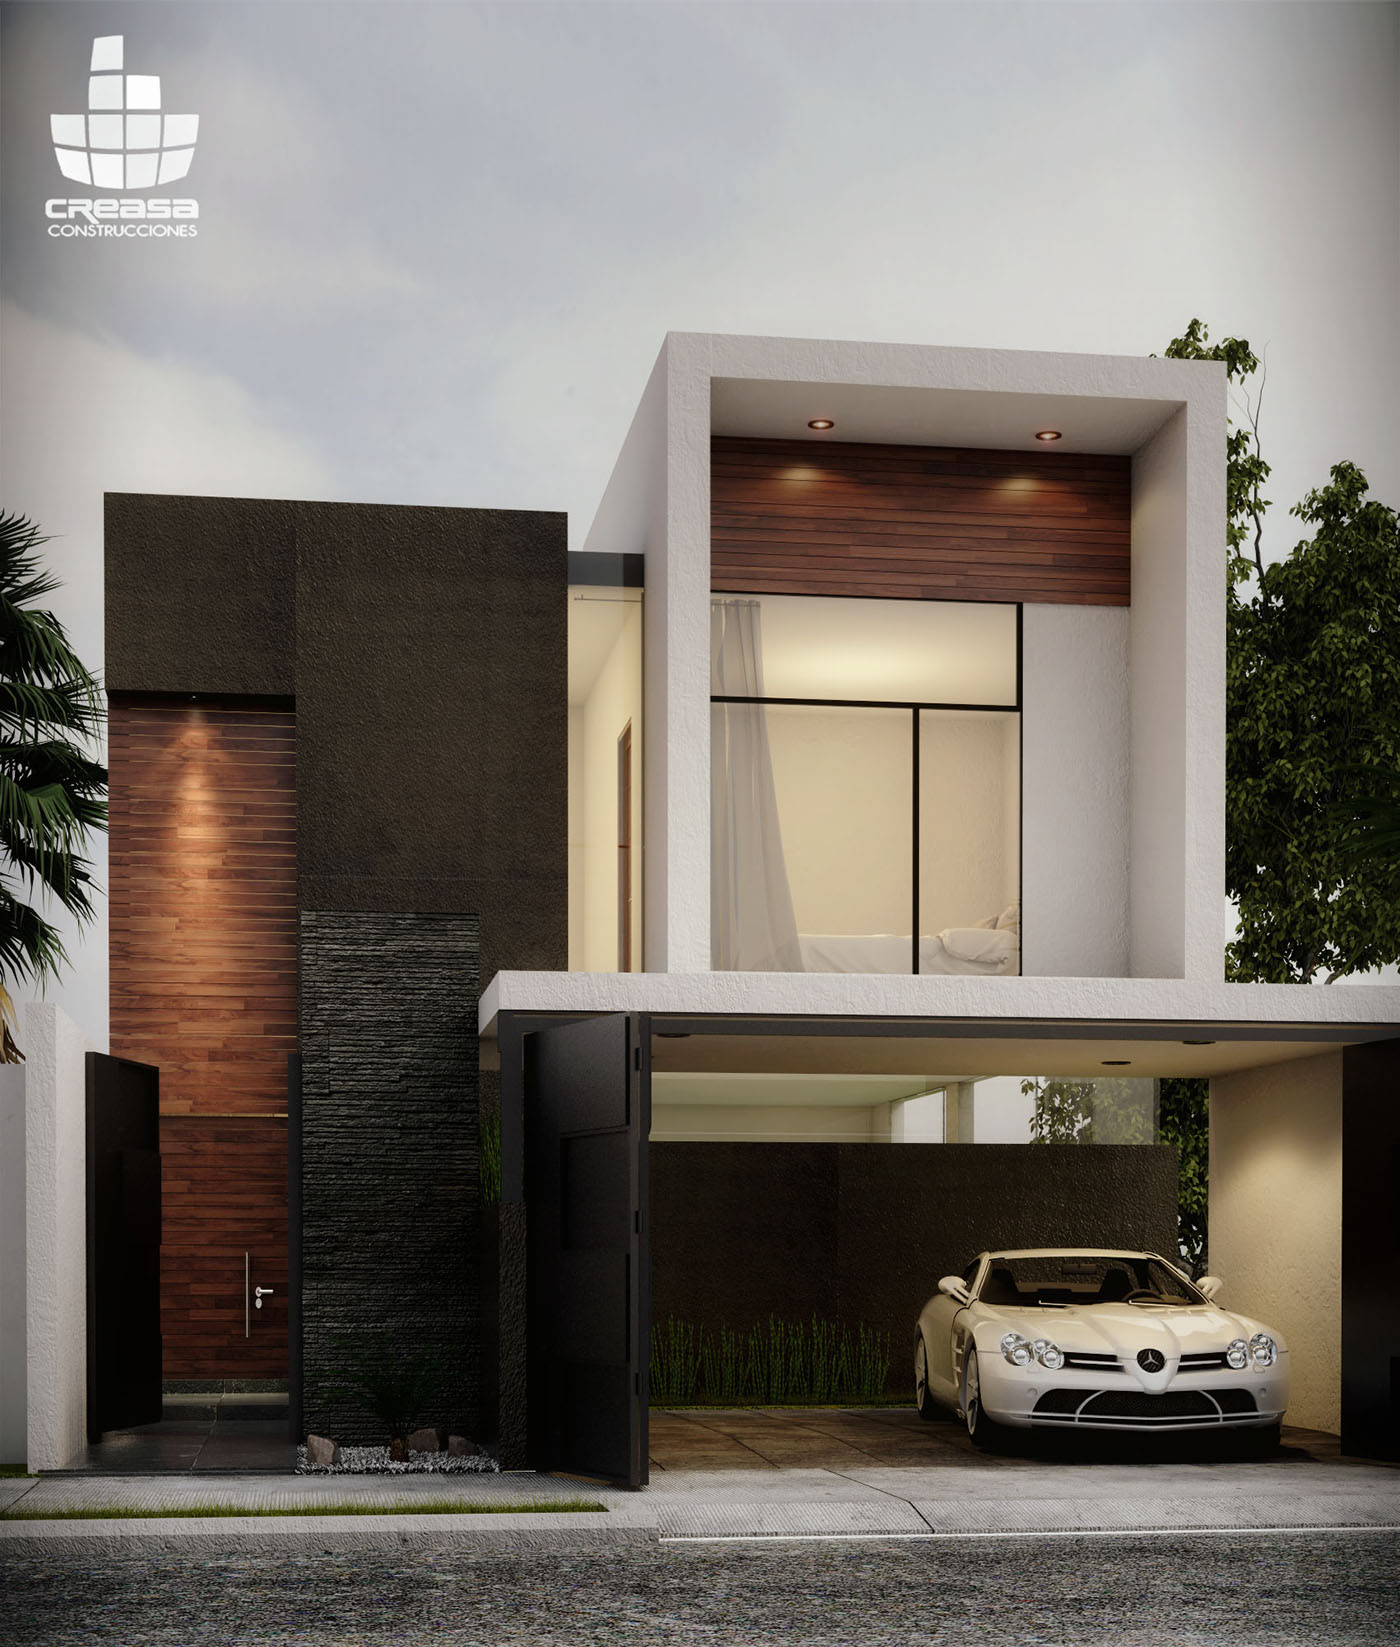 Casa jv colima 04 15 on behance for Fachadas de entradas de casas